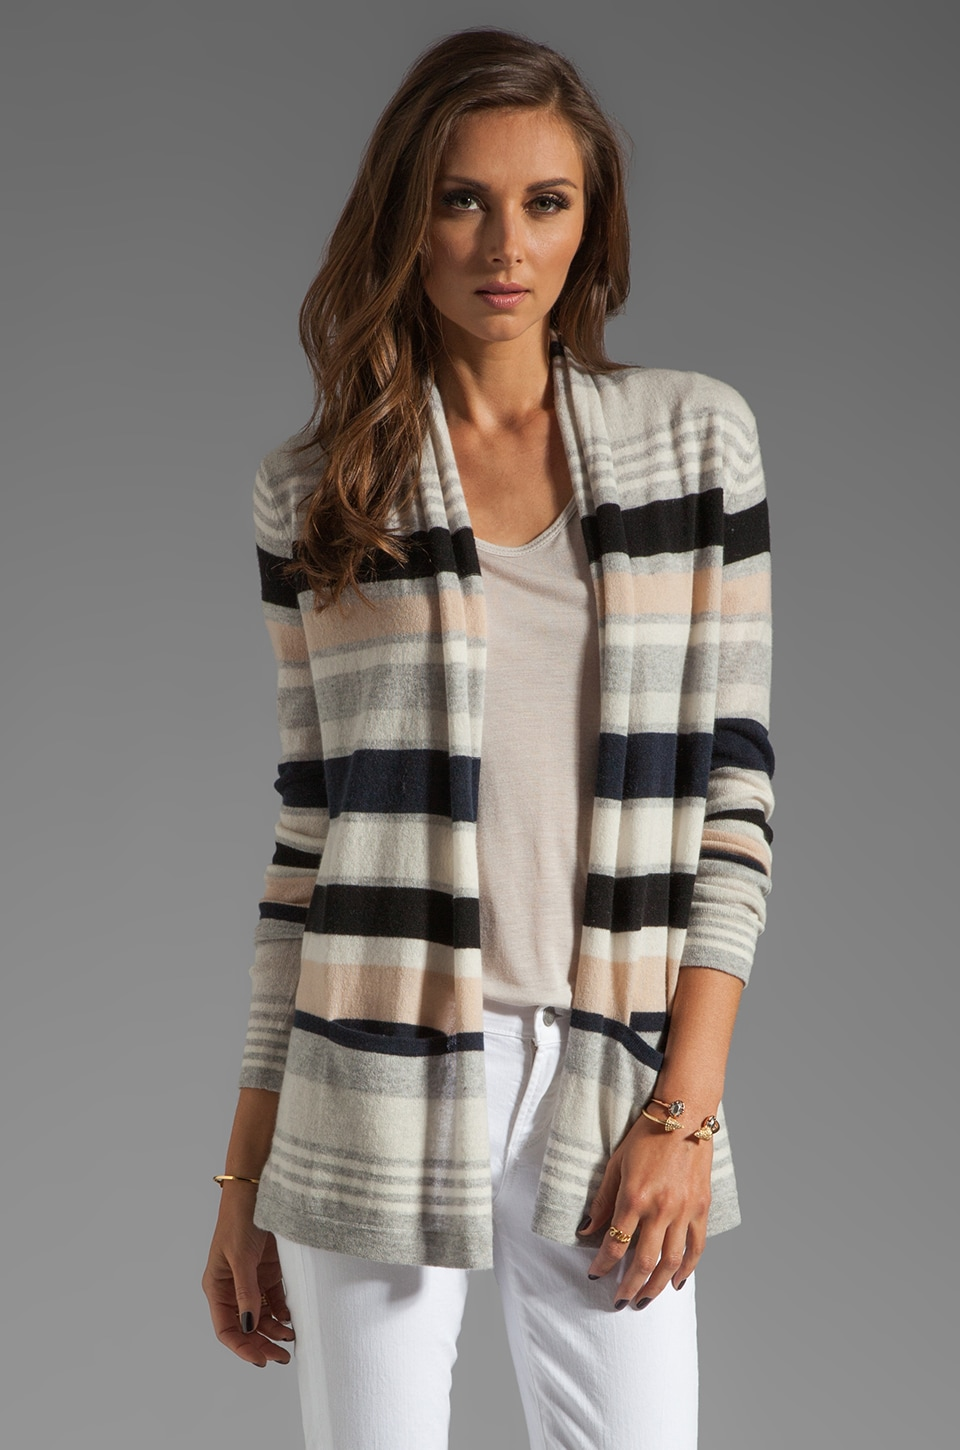 Autumn Cashmere Multi Stripe Drape Sweater in Neutral Combo